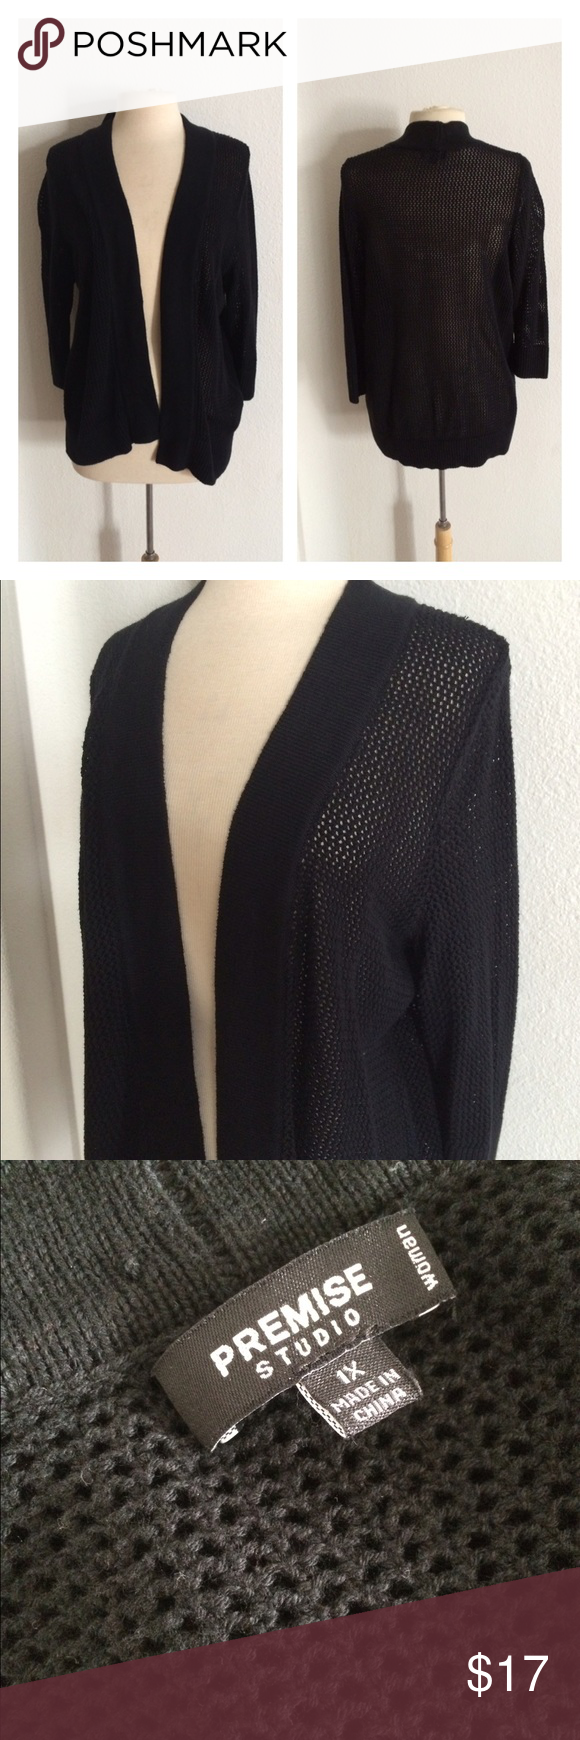 "FLASH SALE! Premise Studio black cardigan Premise Studio black open knit cardigan. Size 1x. Measures 28"" long. 60% cotton/40% rayon. This is in great used condition!  🚫NO TRADES🚫 💲Reasonable offers accepted💲 💰Great bundle discounts💰 Premise Studio Sweaters Cardigans"